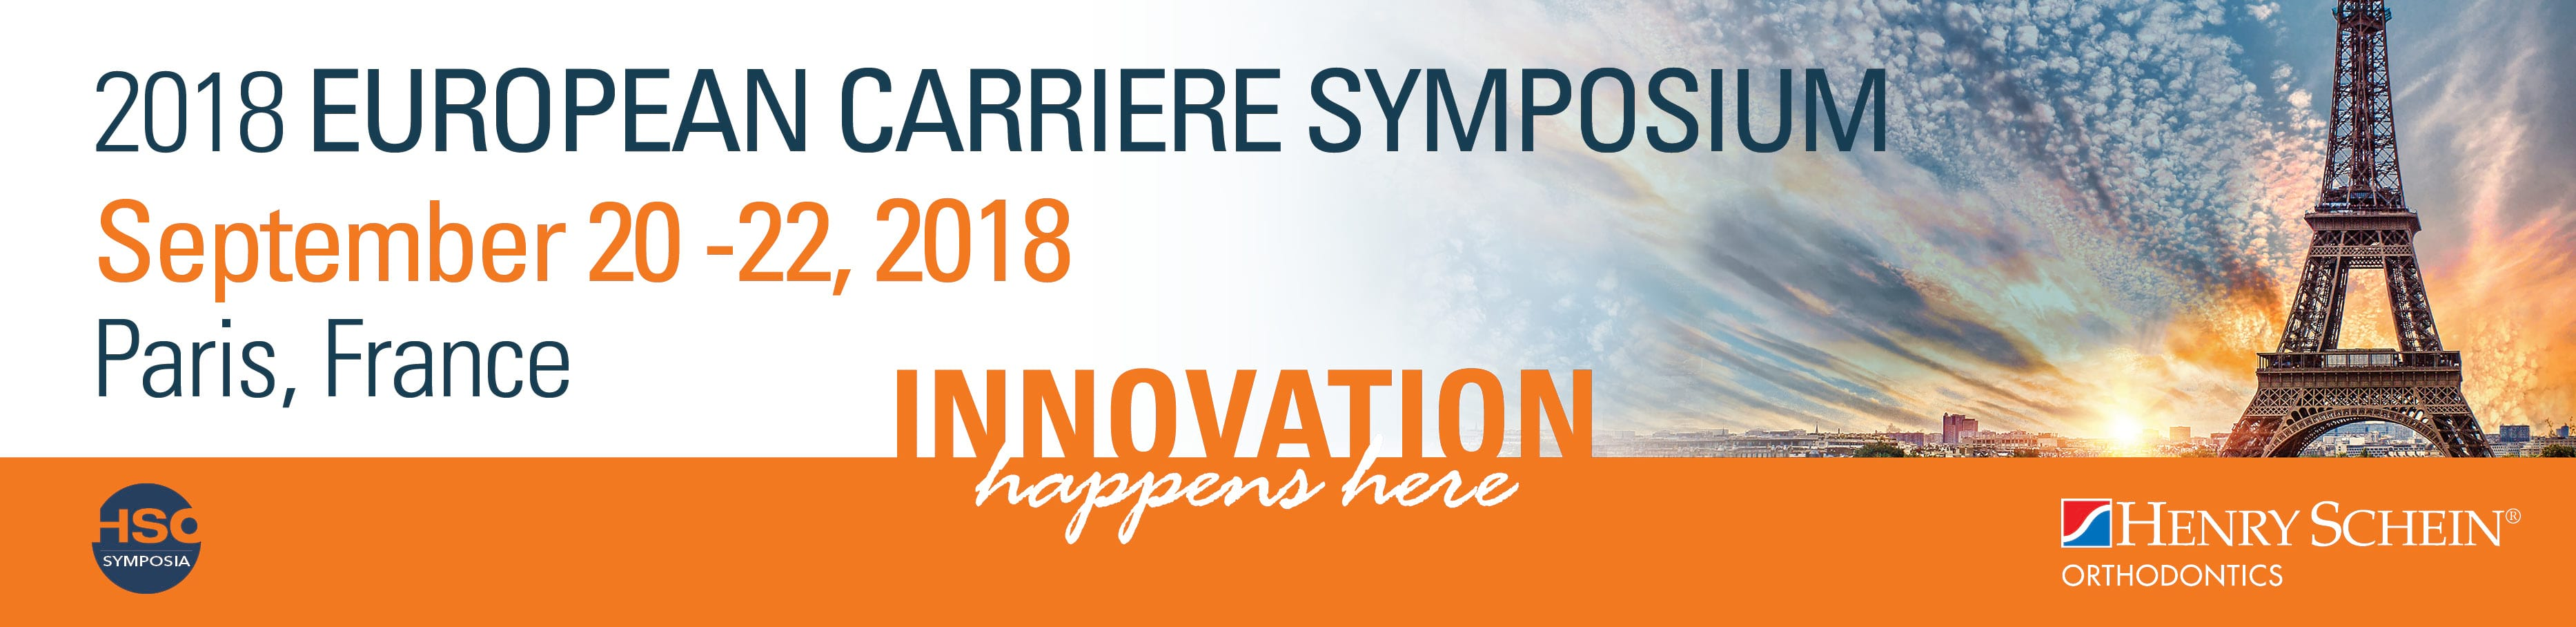 2018 European Carriere Symposium